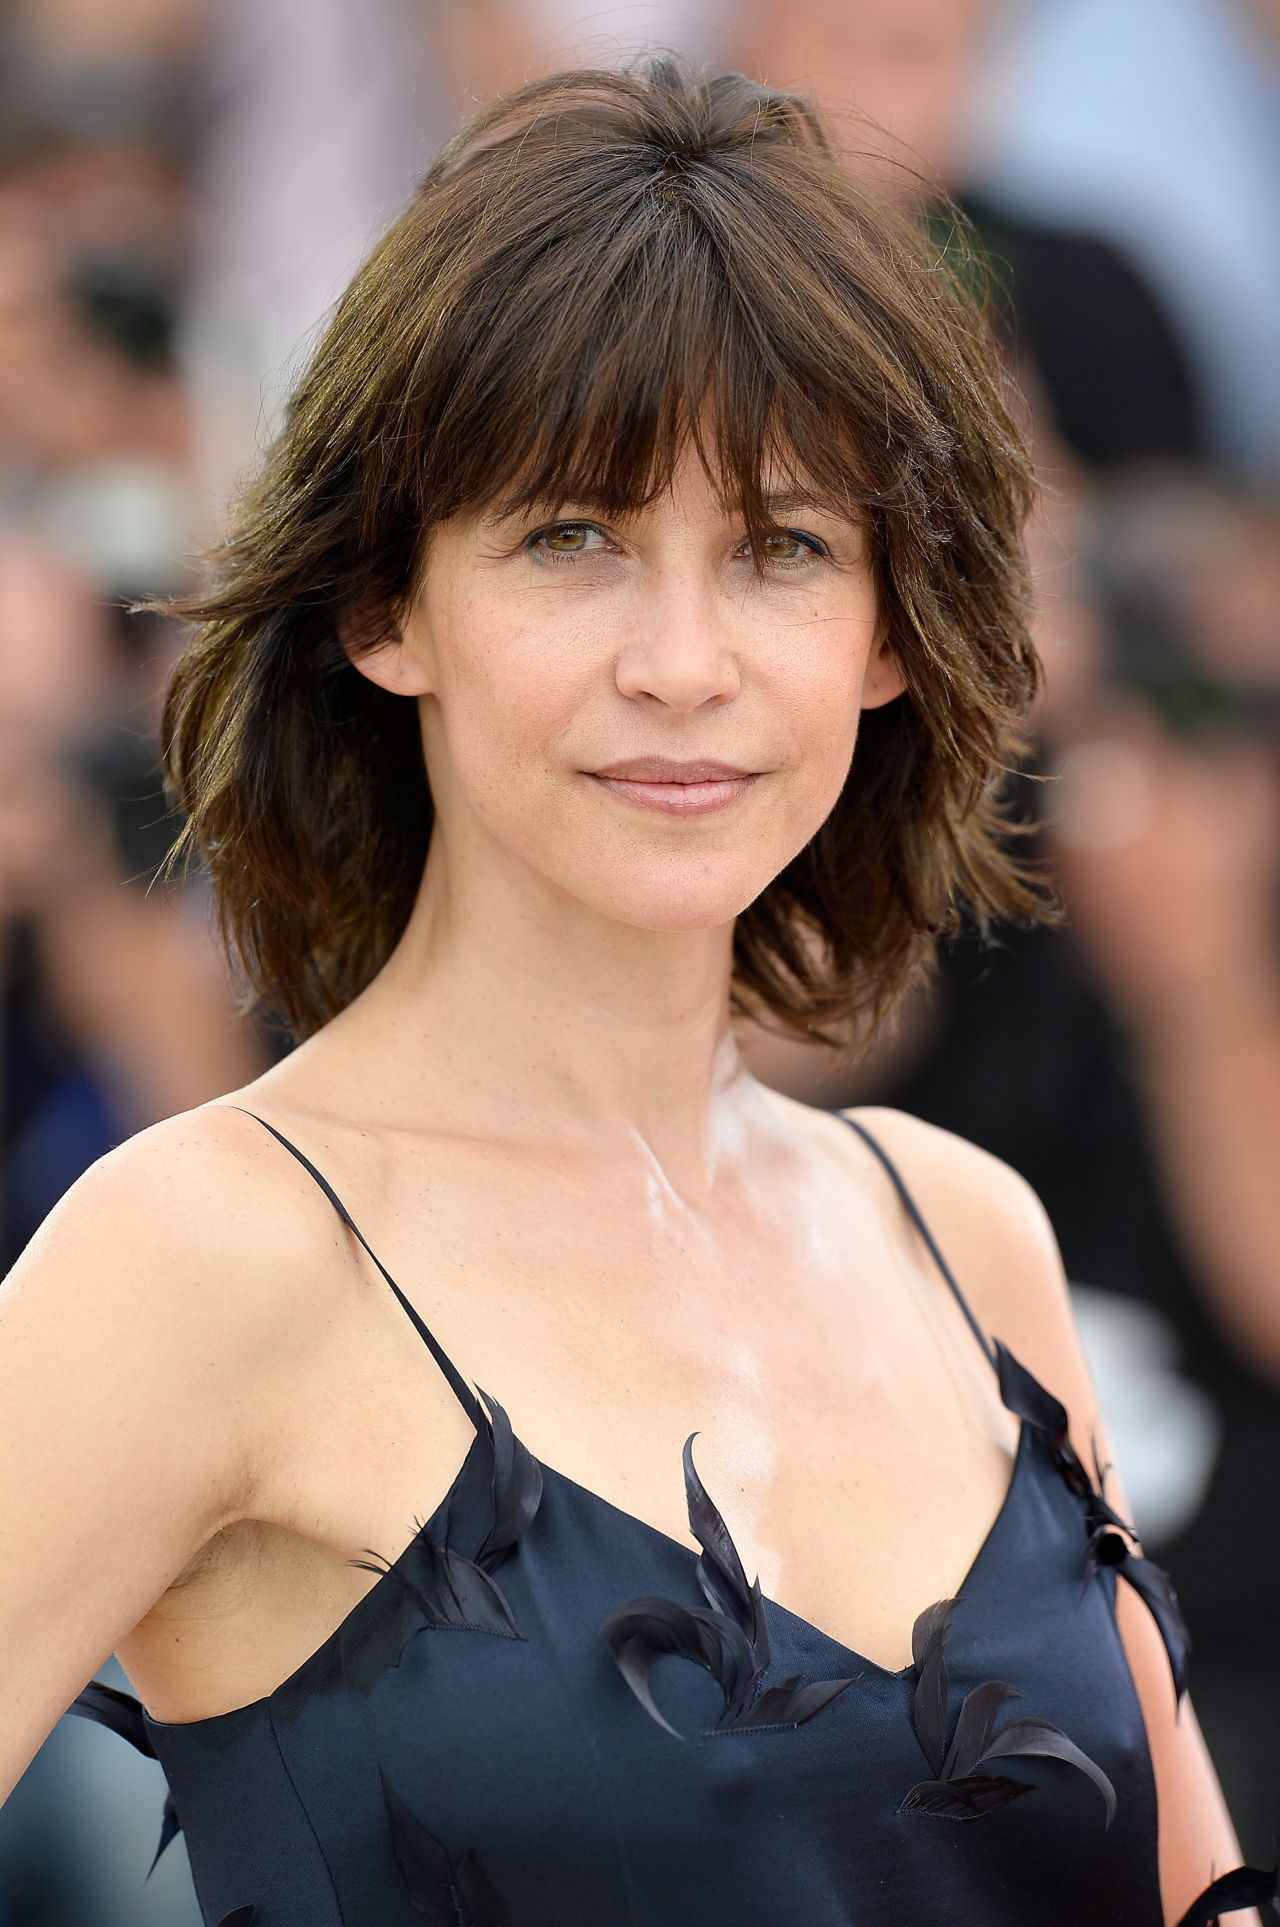 Pics Sophie Marceau nude (39 photo), Ass, Hot, Boobs, swimsuit 2015